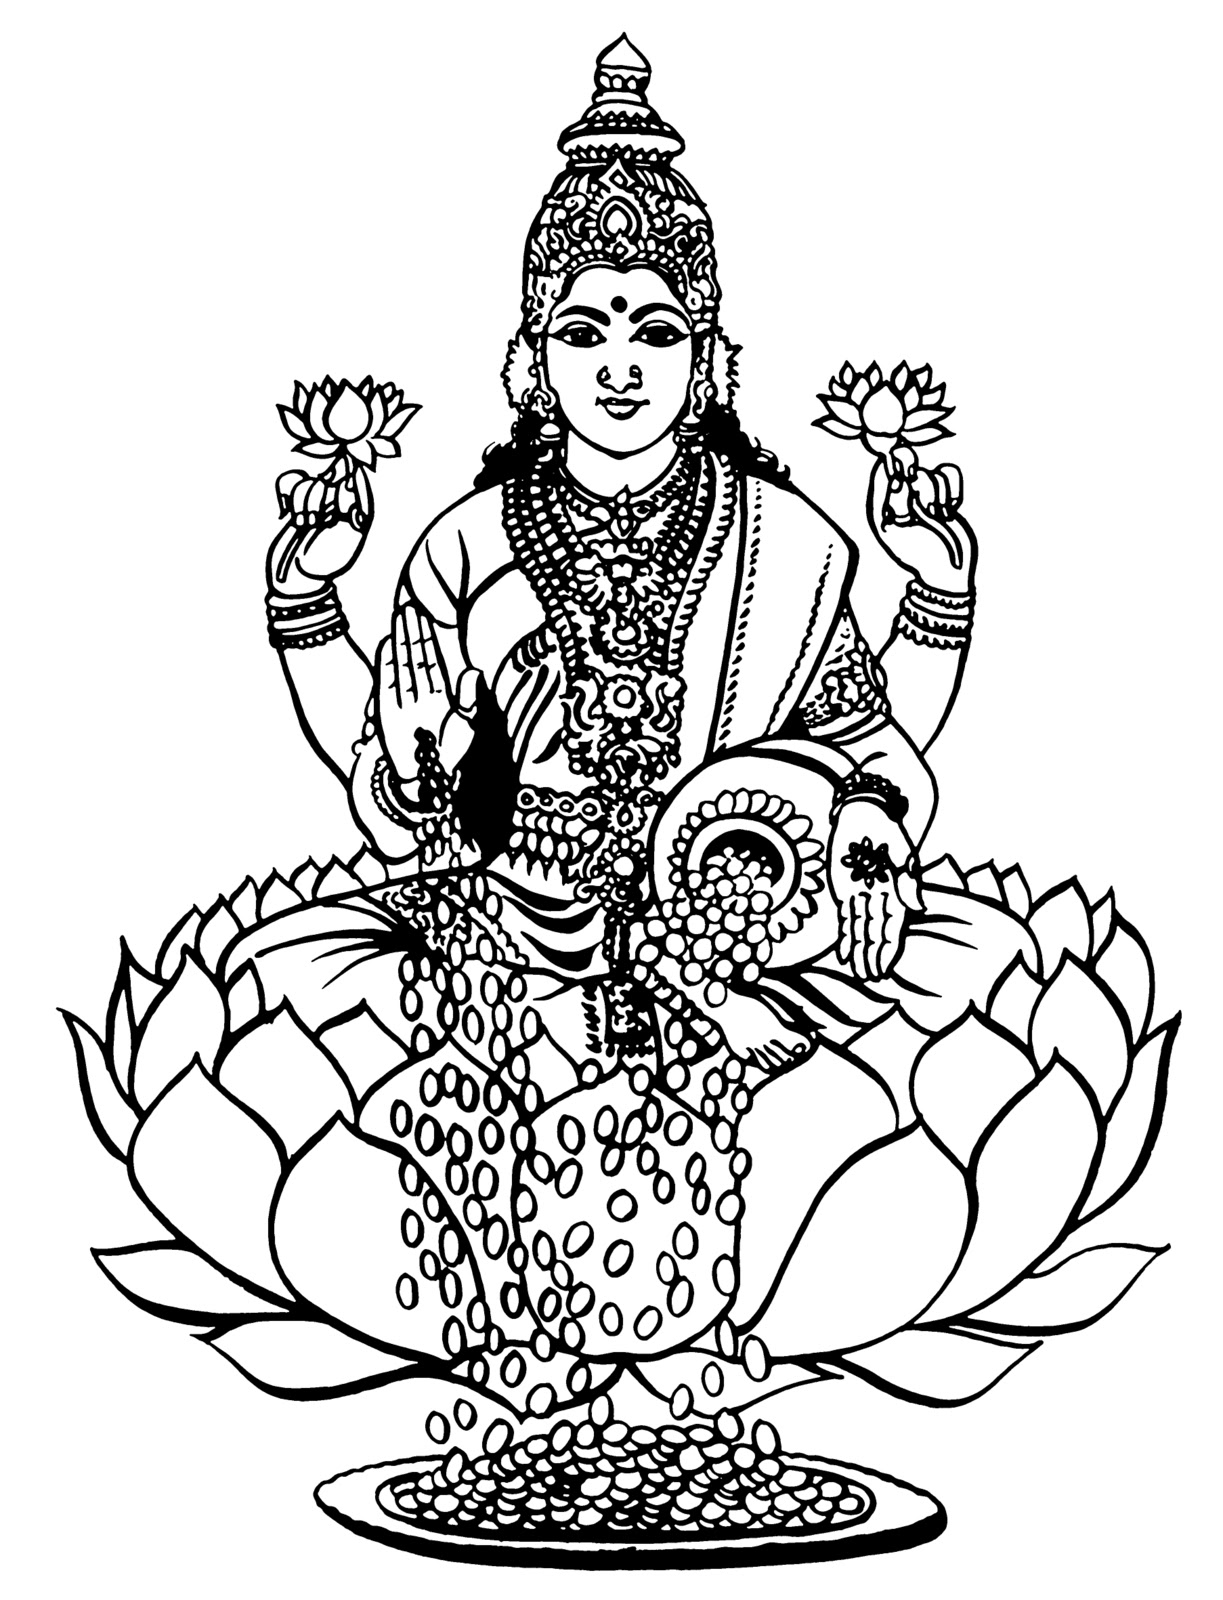 Lakshmi bhu coloring page coloring pages for Lakshmi coloring pages